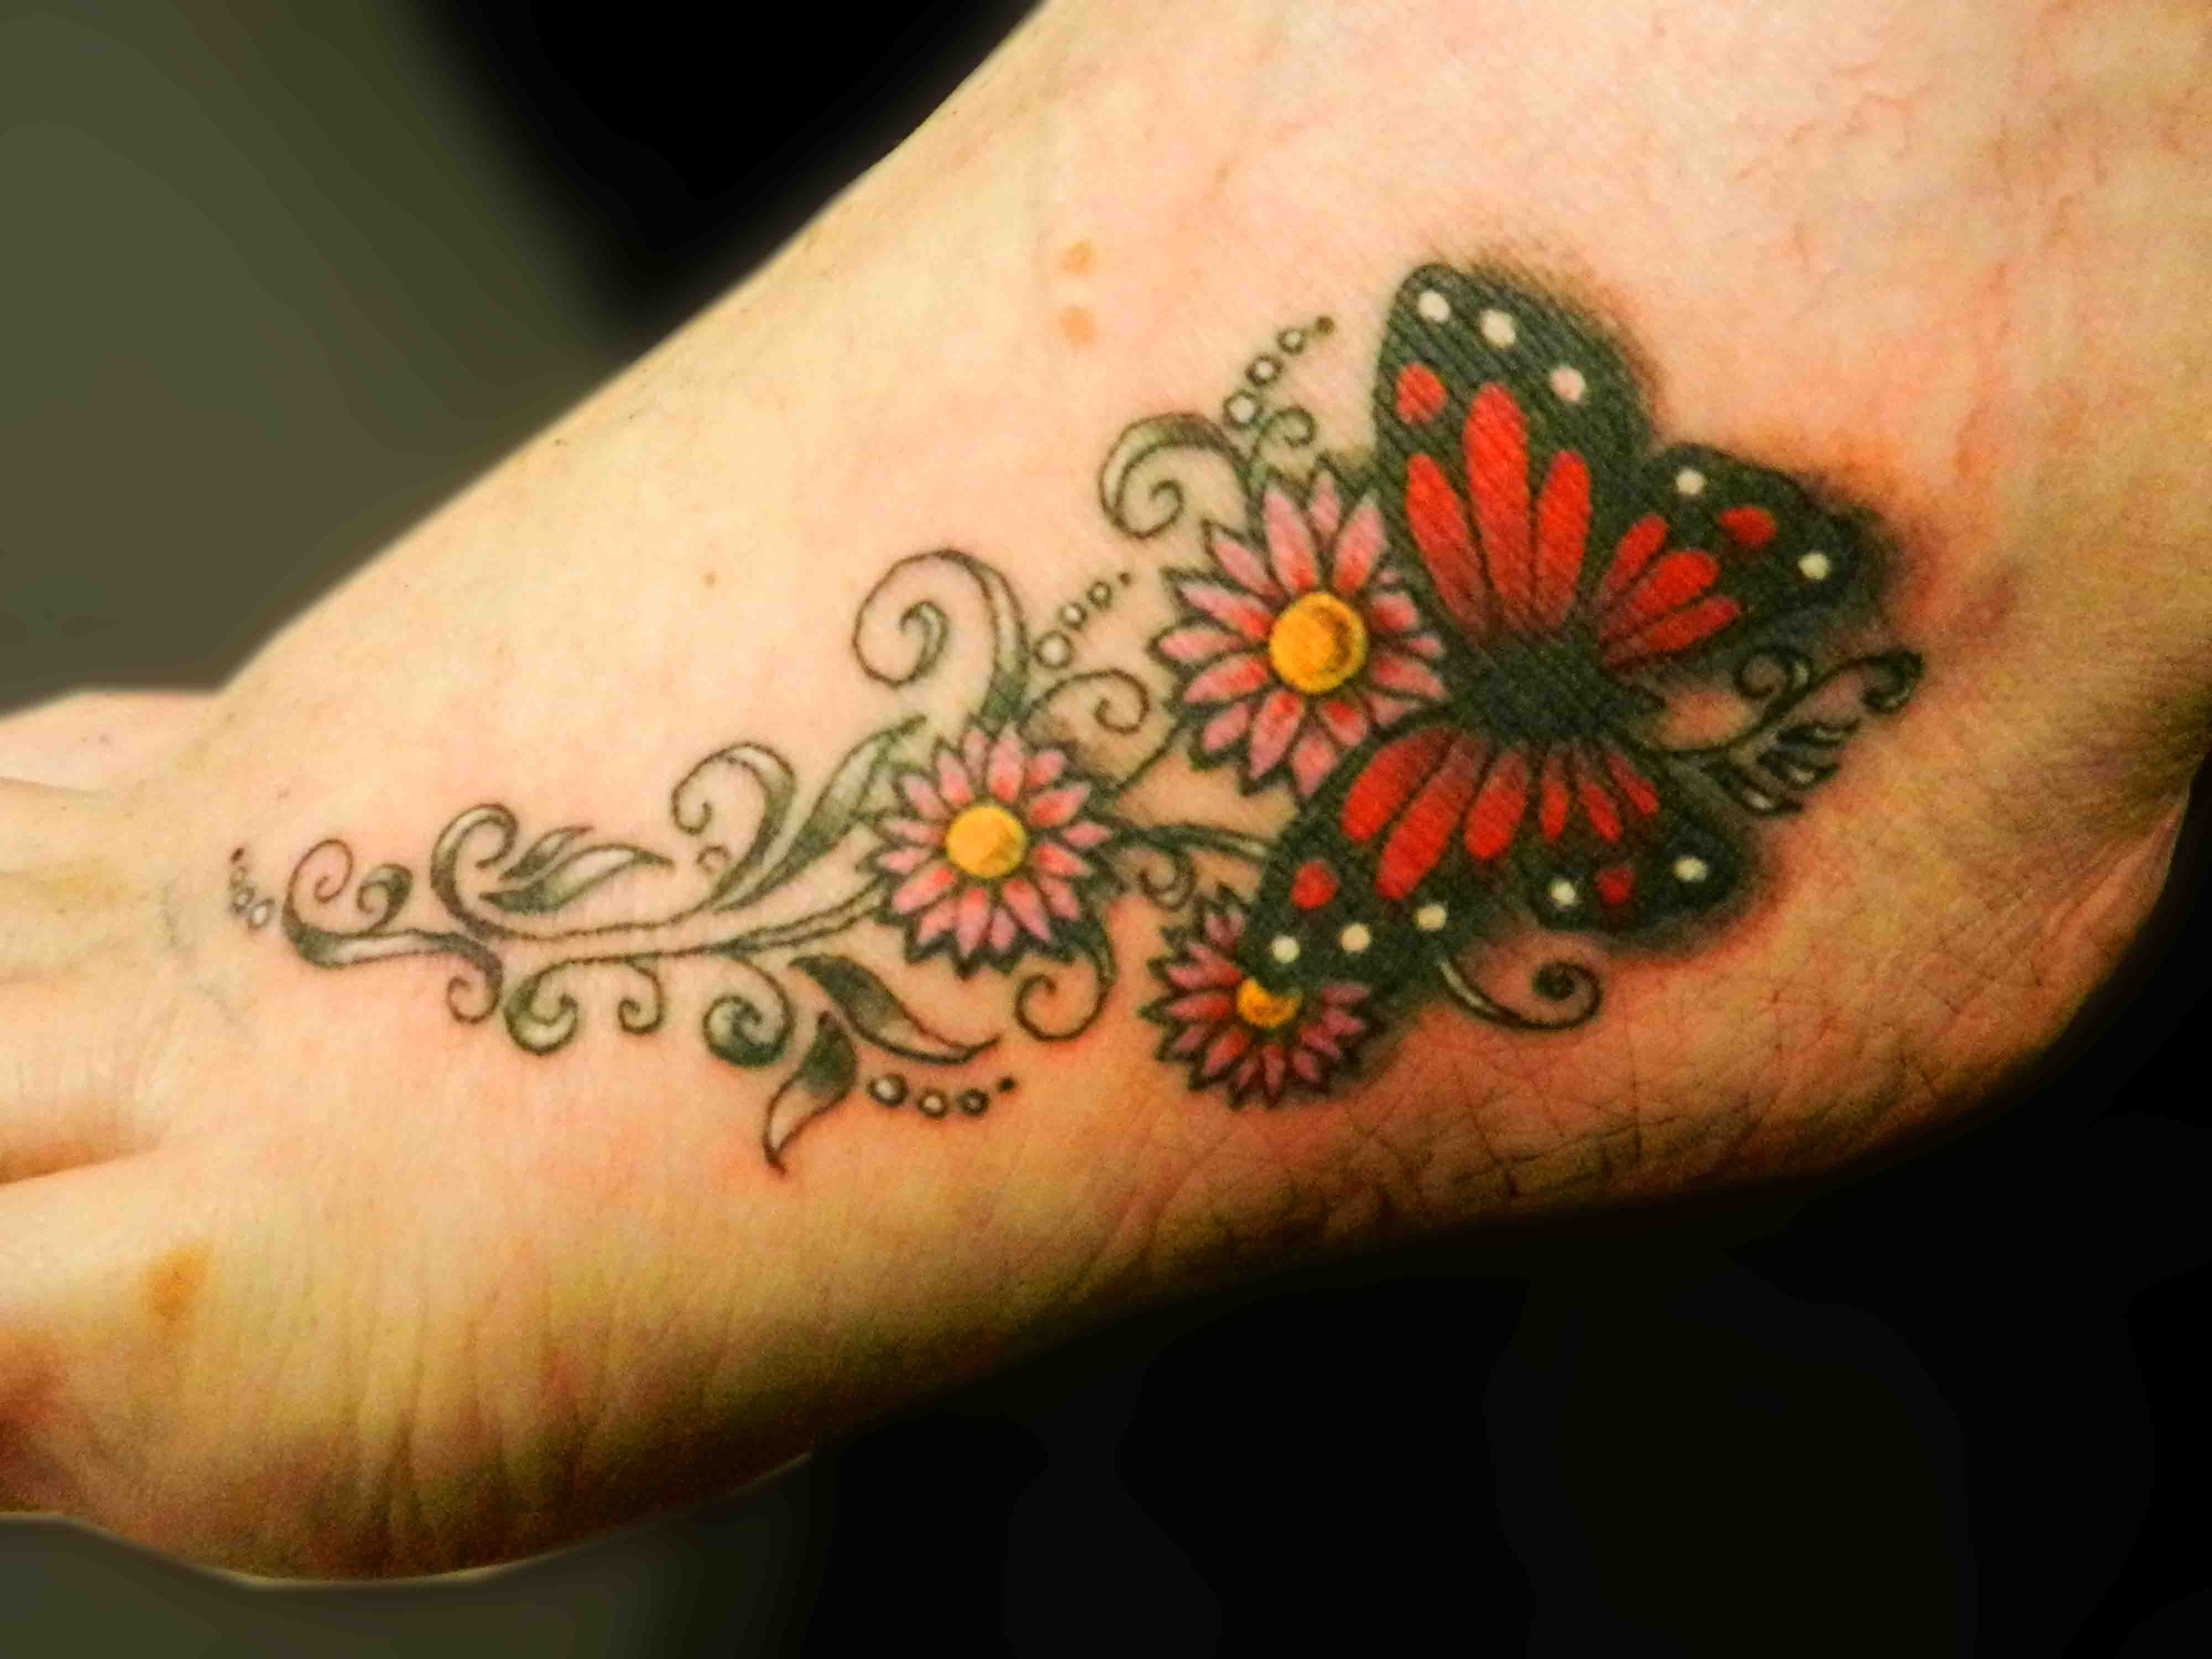 57 butterfly and flower tattoos on foot lovely flowers butterfly tattoo on foot izmirmasajfo